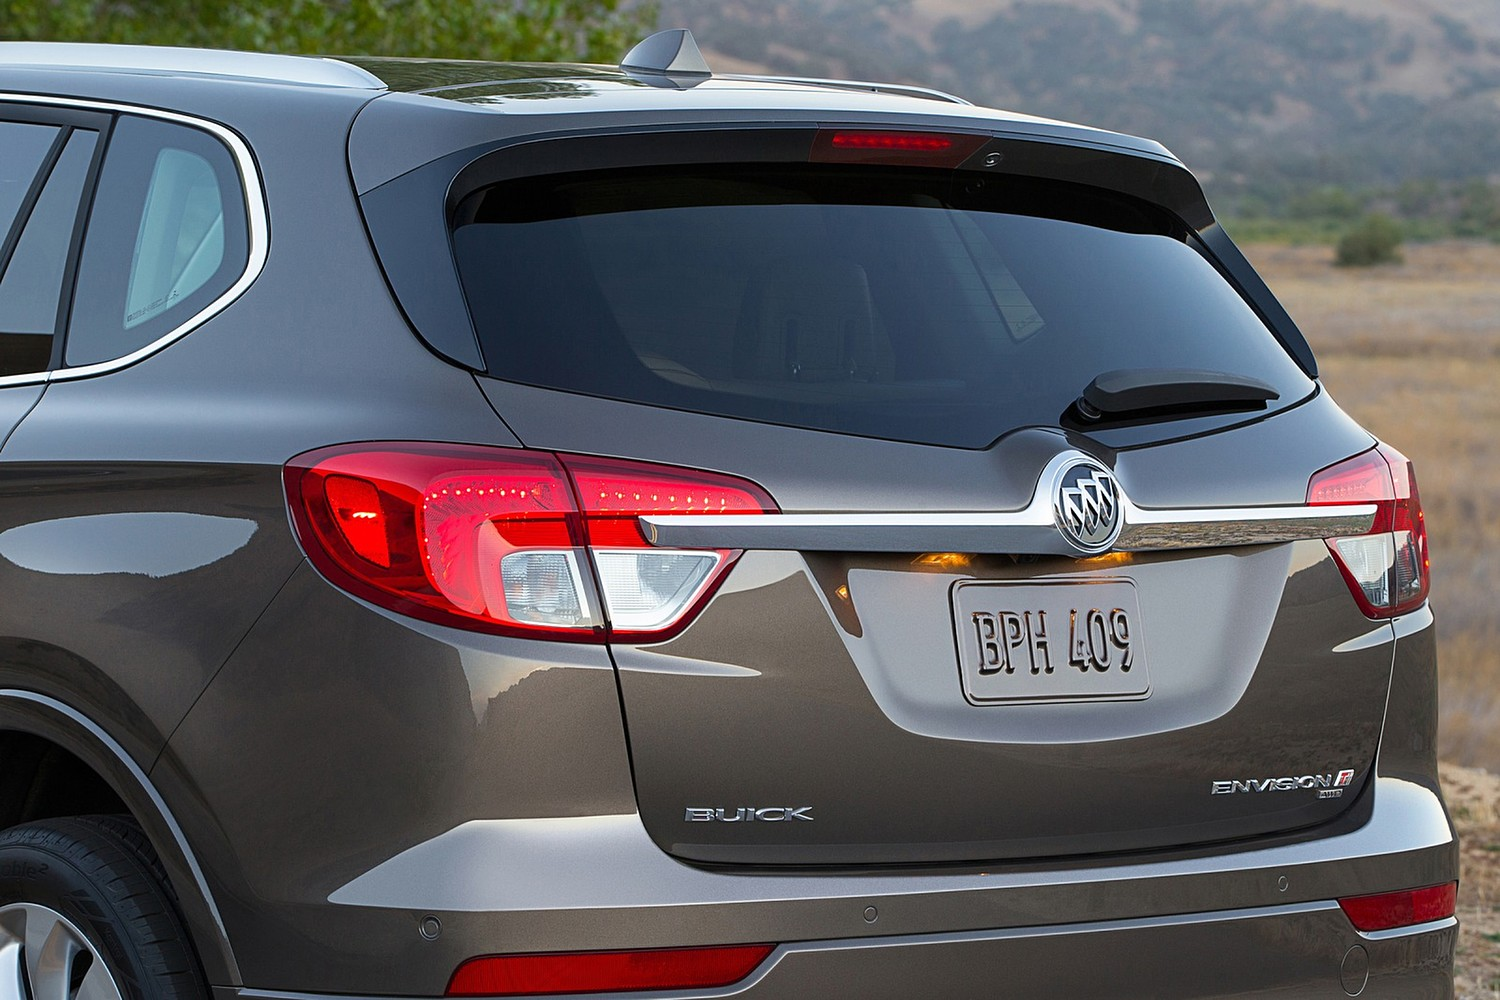 Buick Envision Premium II 4dr SUV Exterior Detail (2016 model year shown)